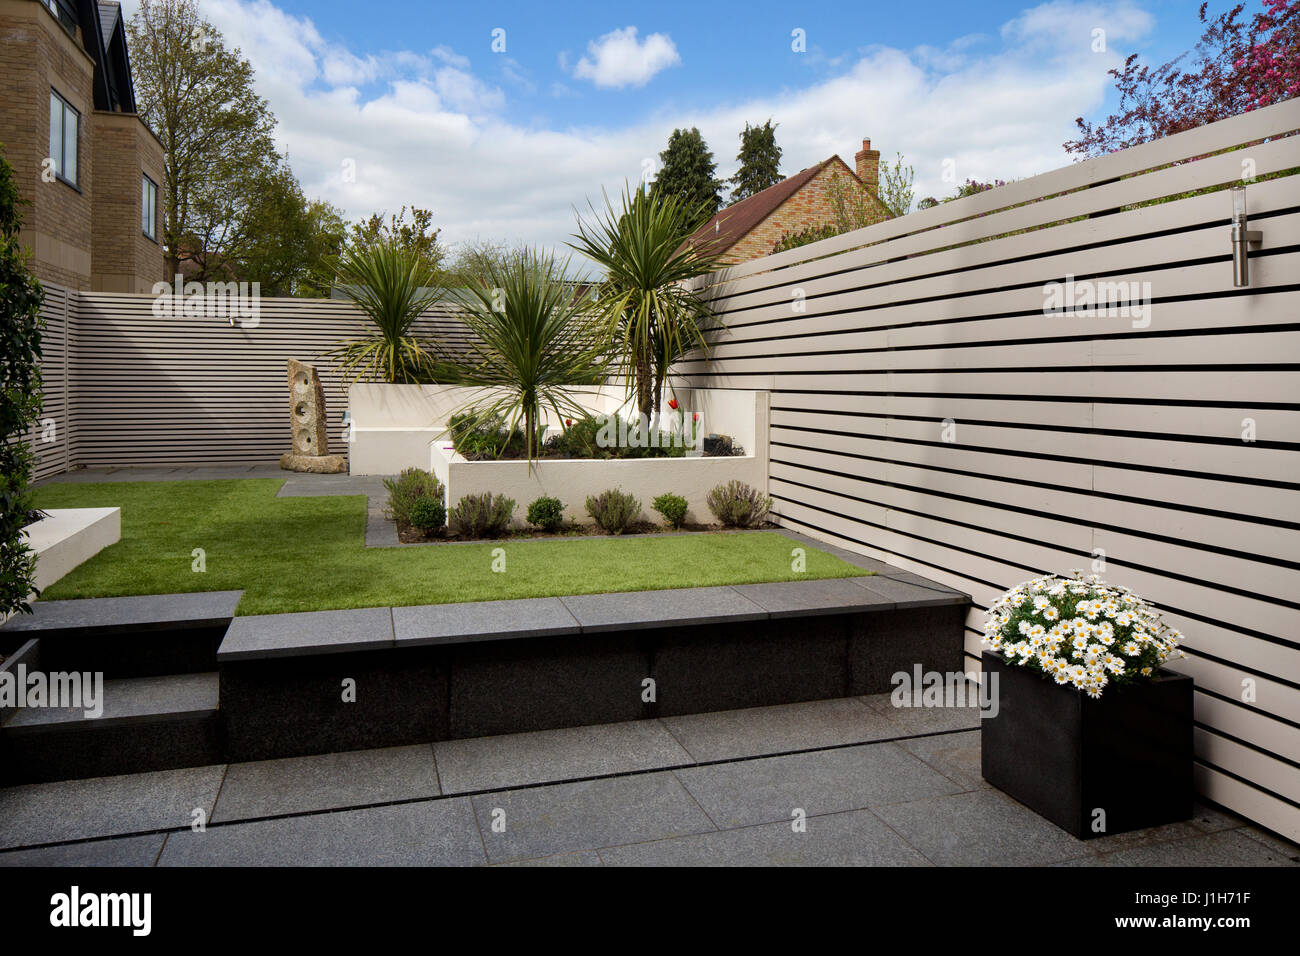 Modern Contemporary English garden with Wooden slated painted screen fence, fake grass and granite paving - Stock Image